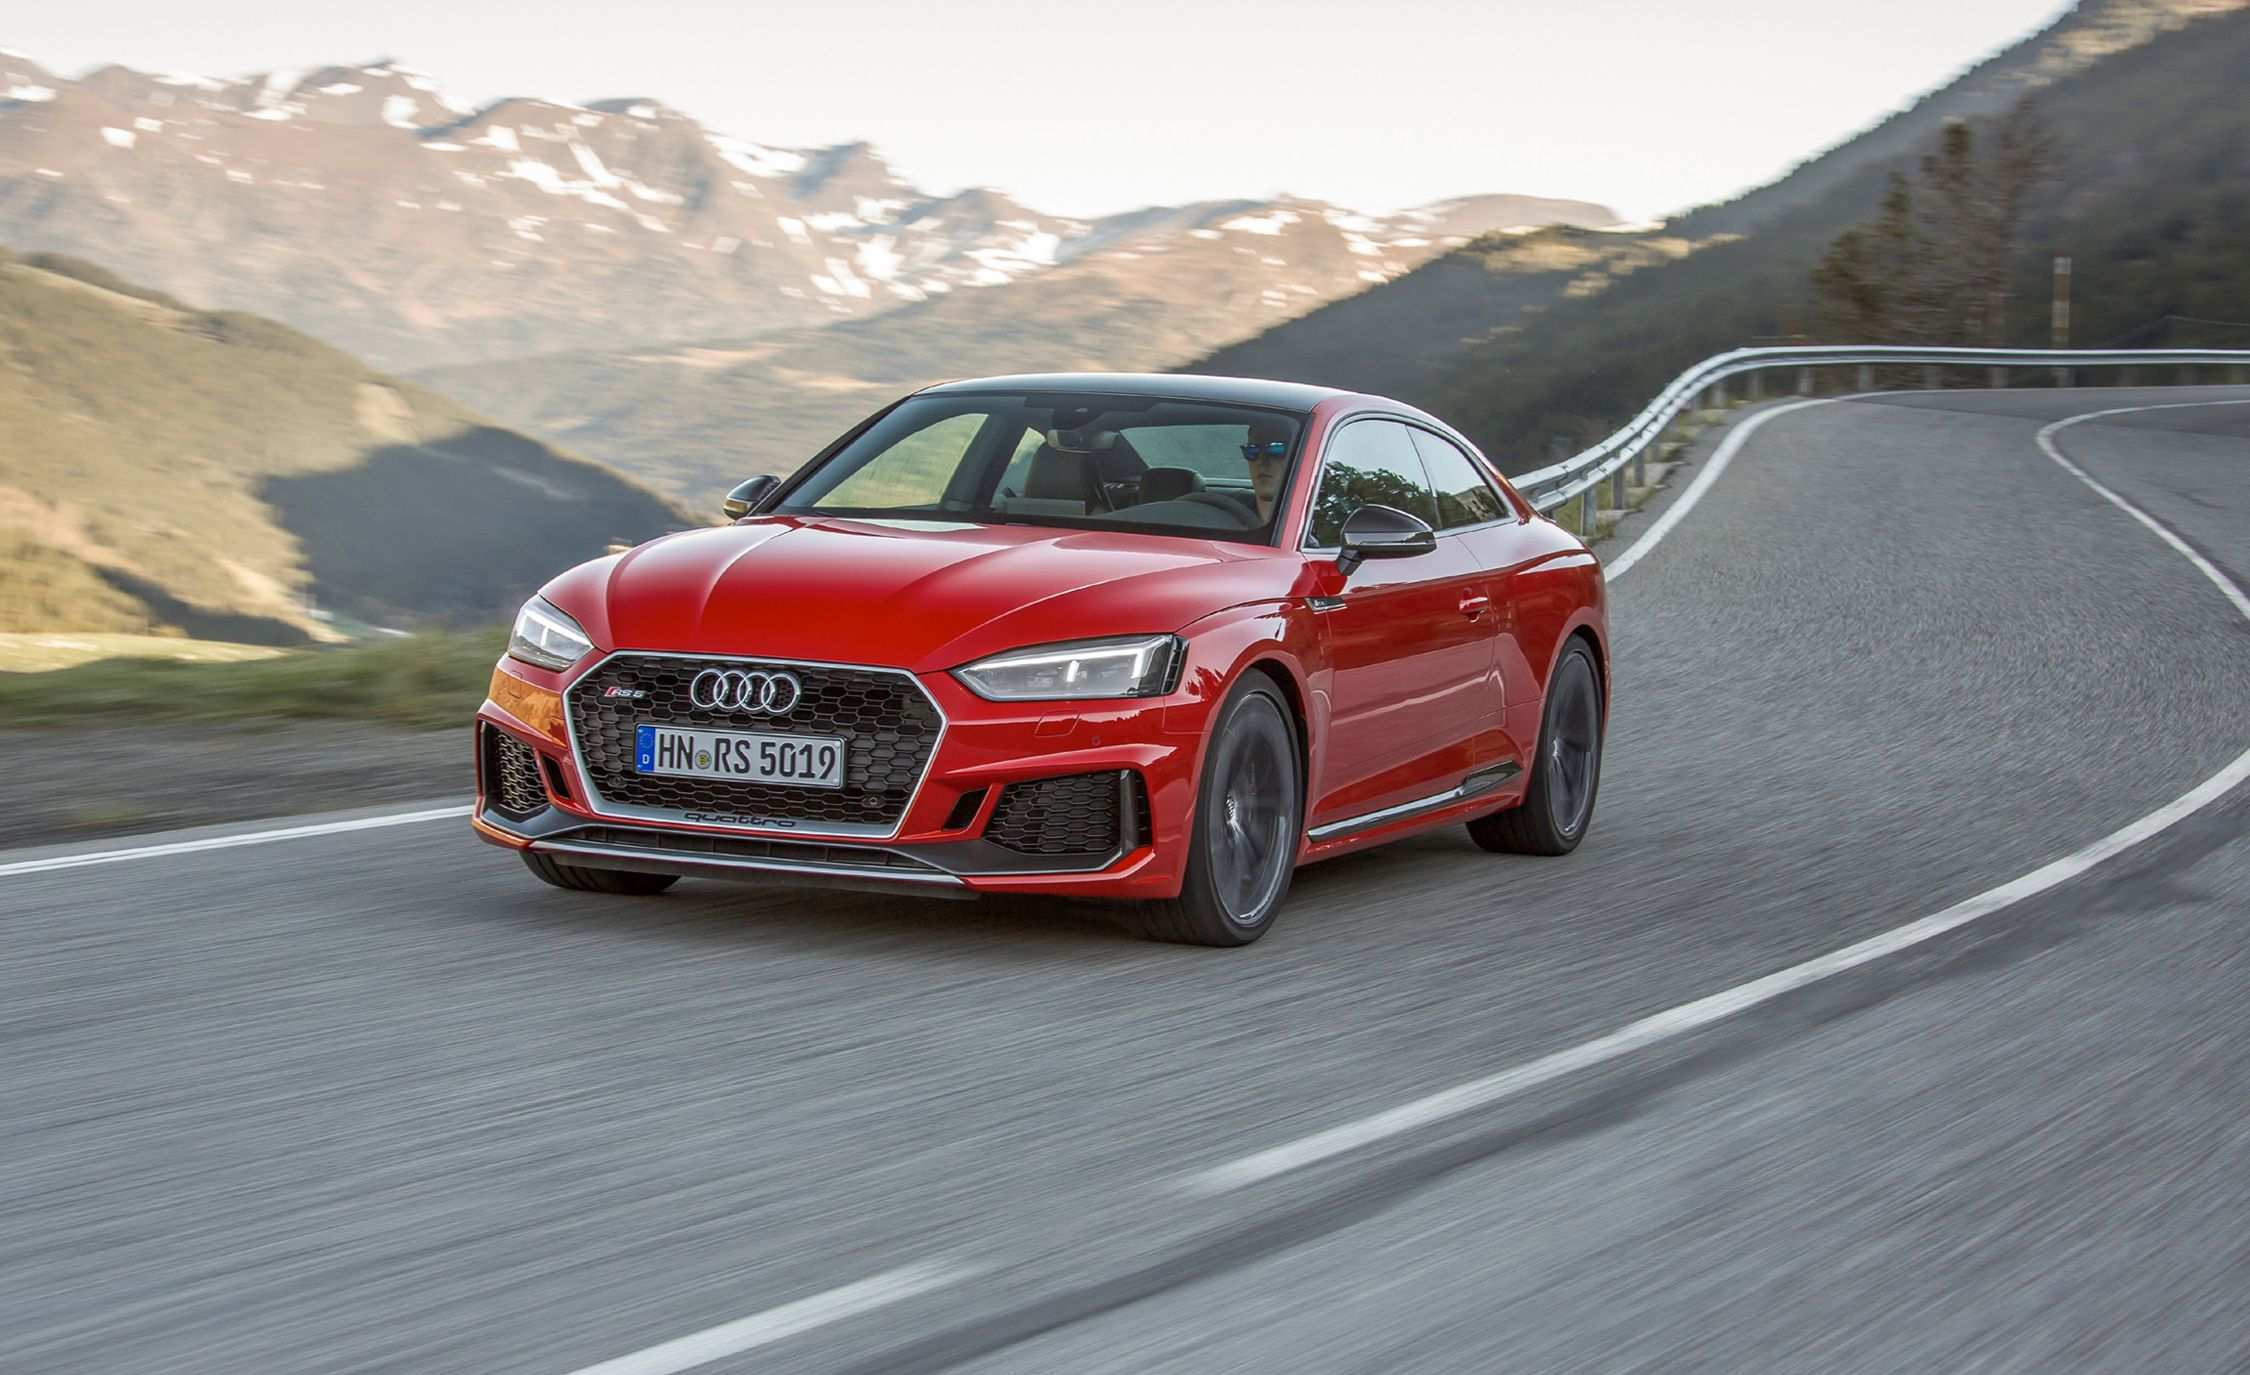 97 Great New 2019 Audi Rs5 Exterior and Interior by New 2019 Audi Rs5